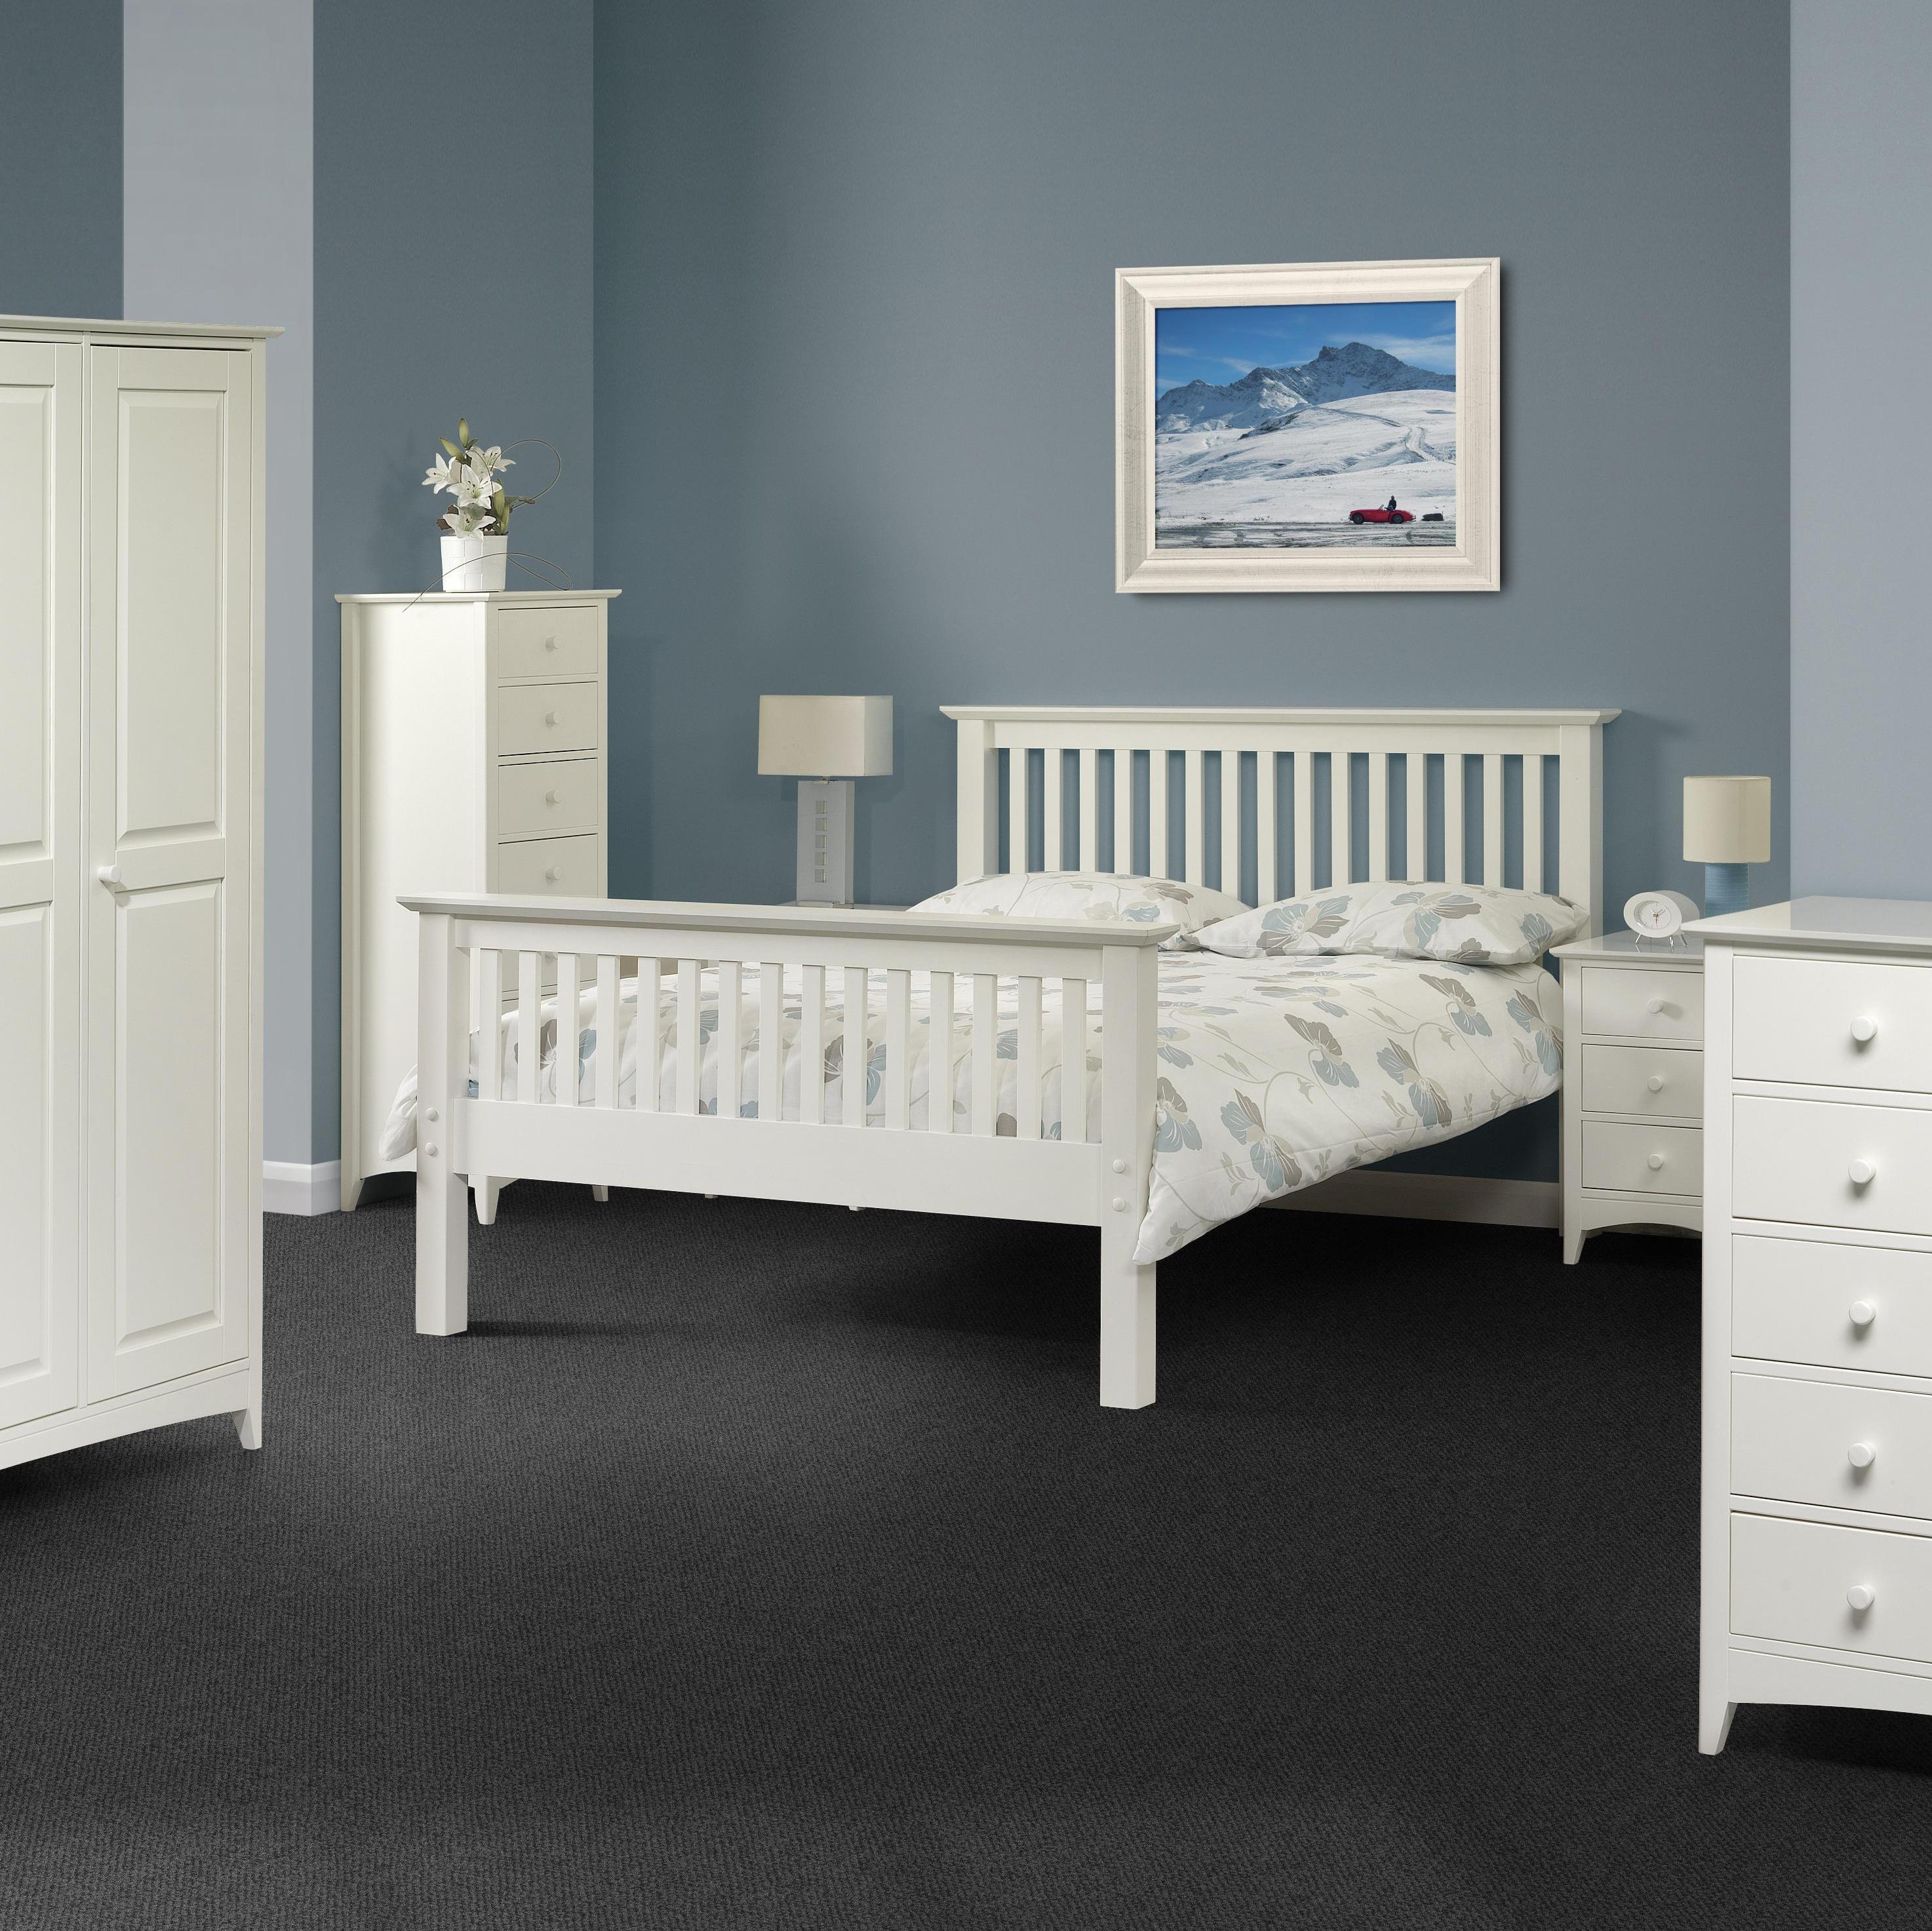 Cameo Bedroom Furniture Cameo Bedroom Furniture Cameo Bedroom Set 2 Up To 60 Rrp Next Day